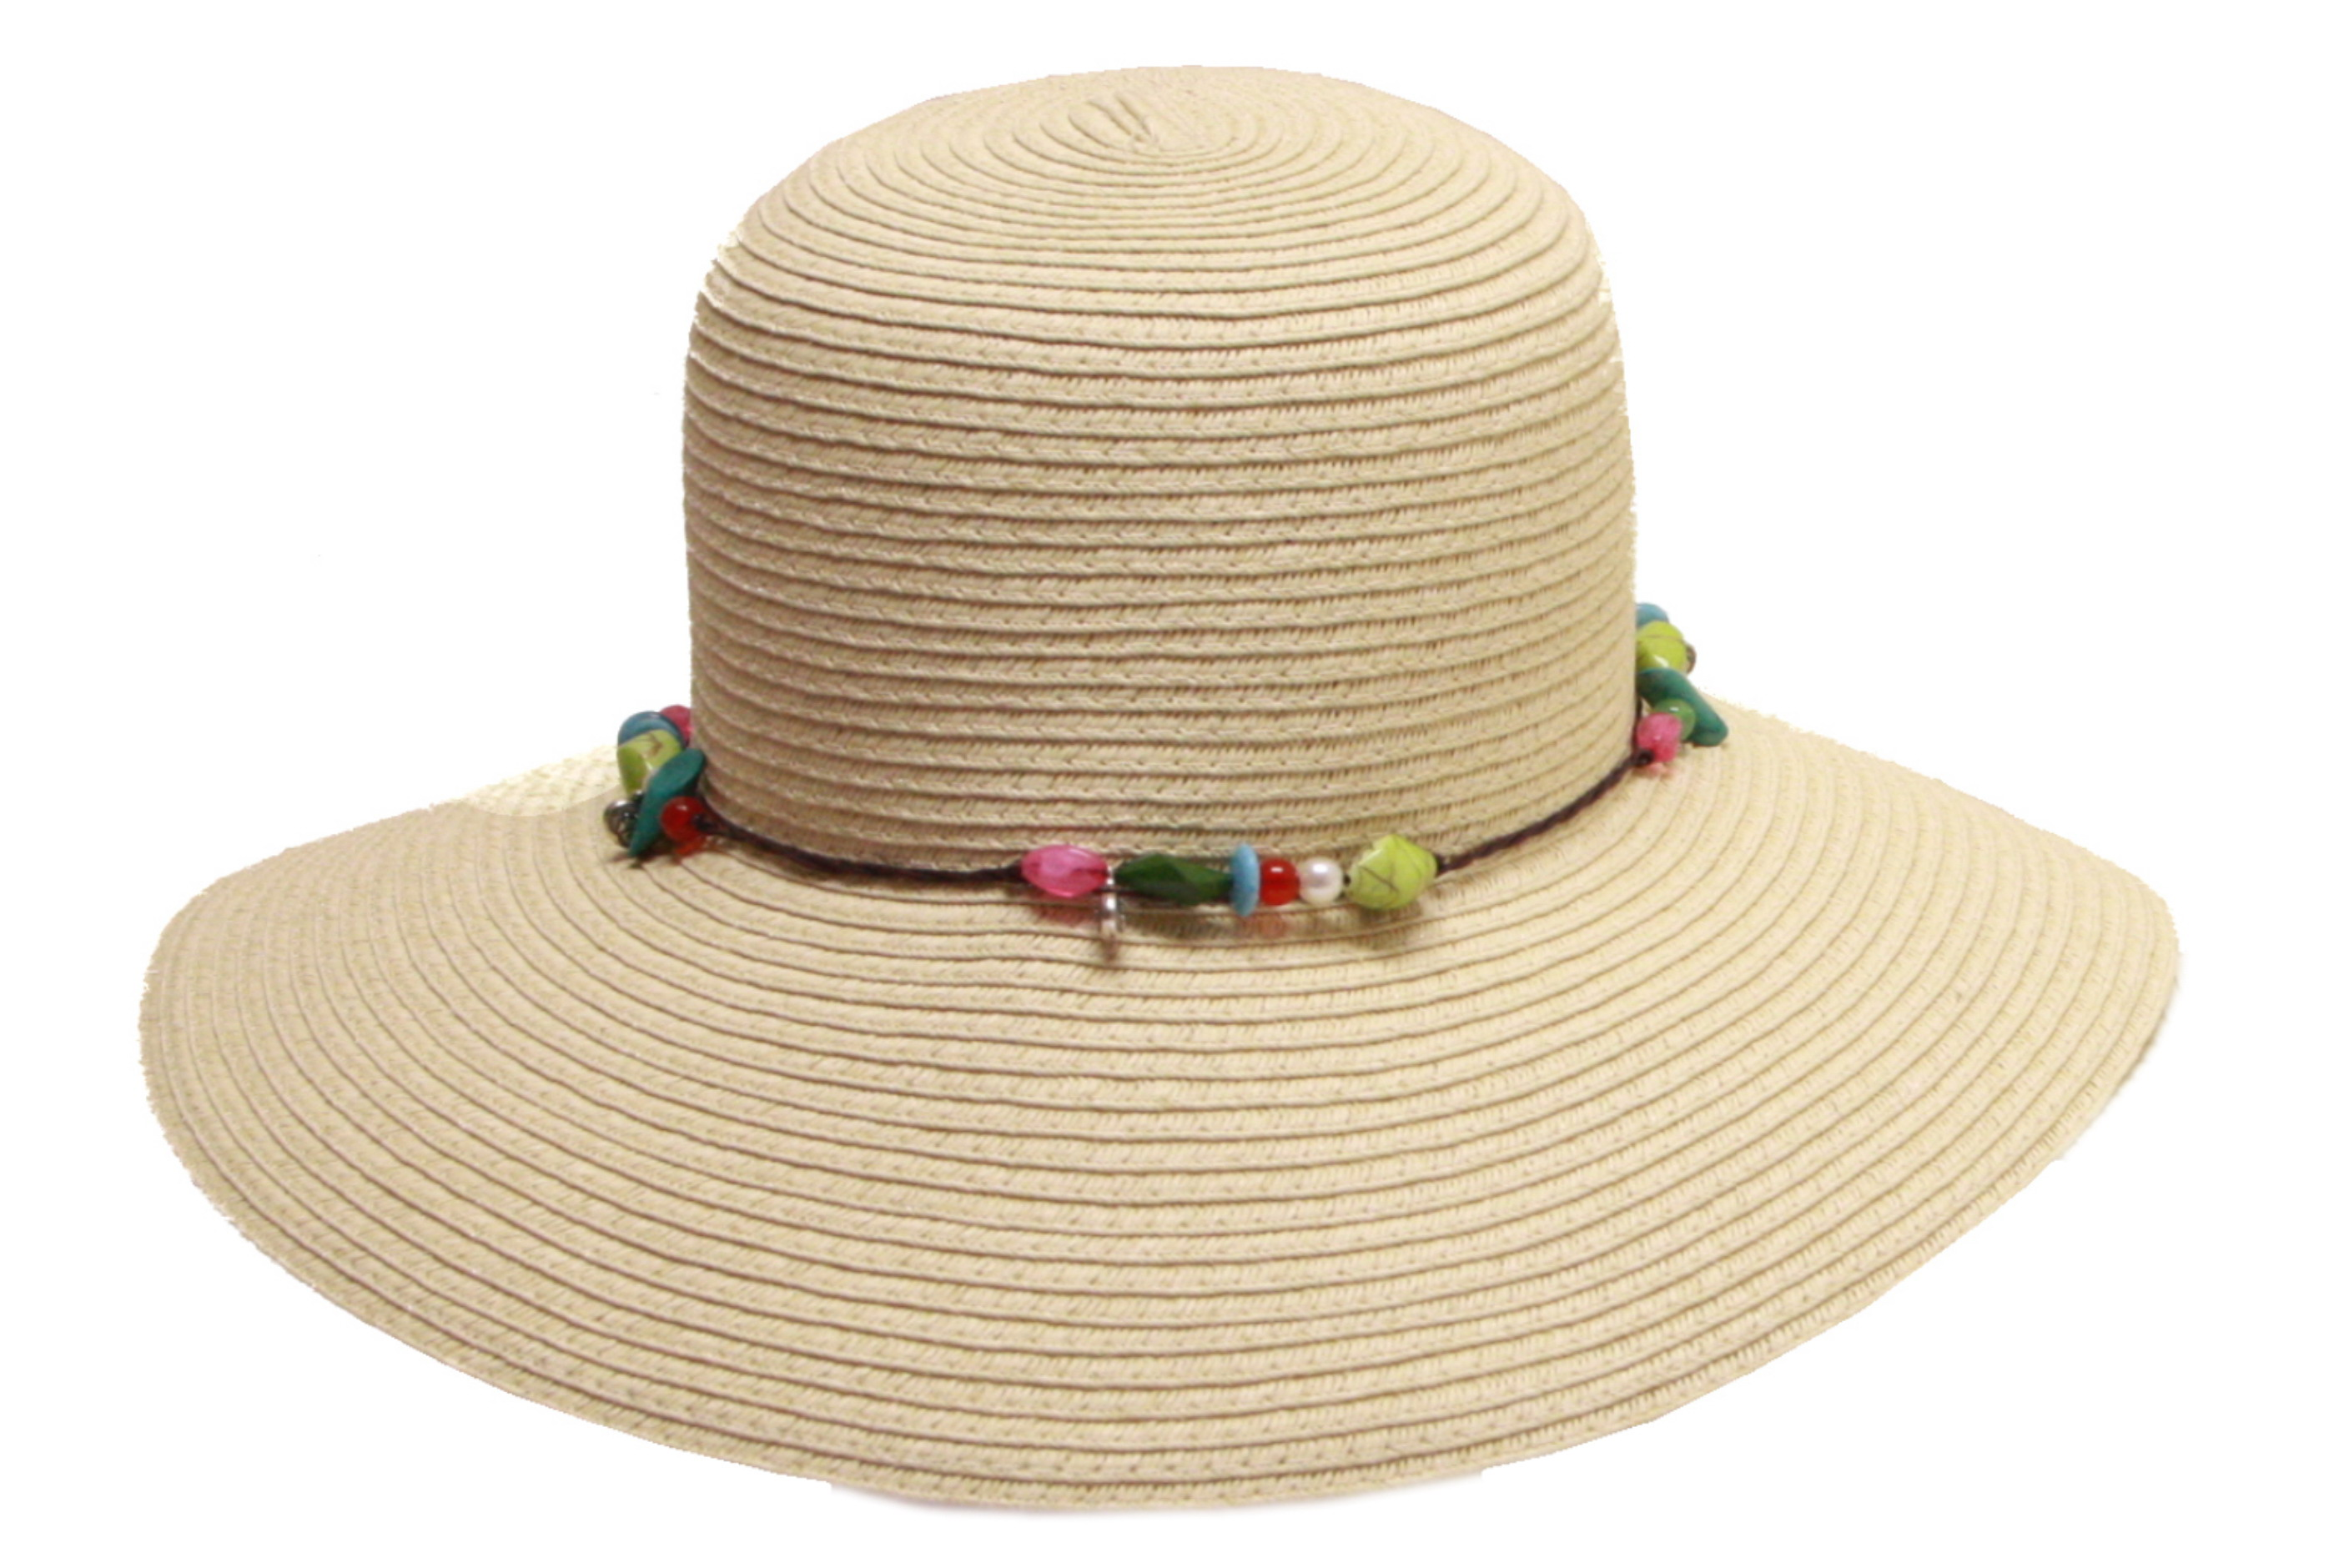 Floppy Hat With String Bow & Beads